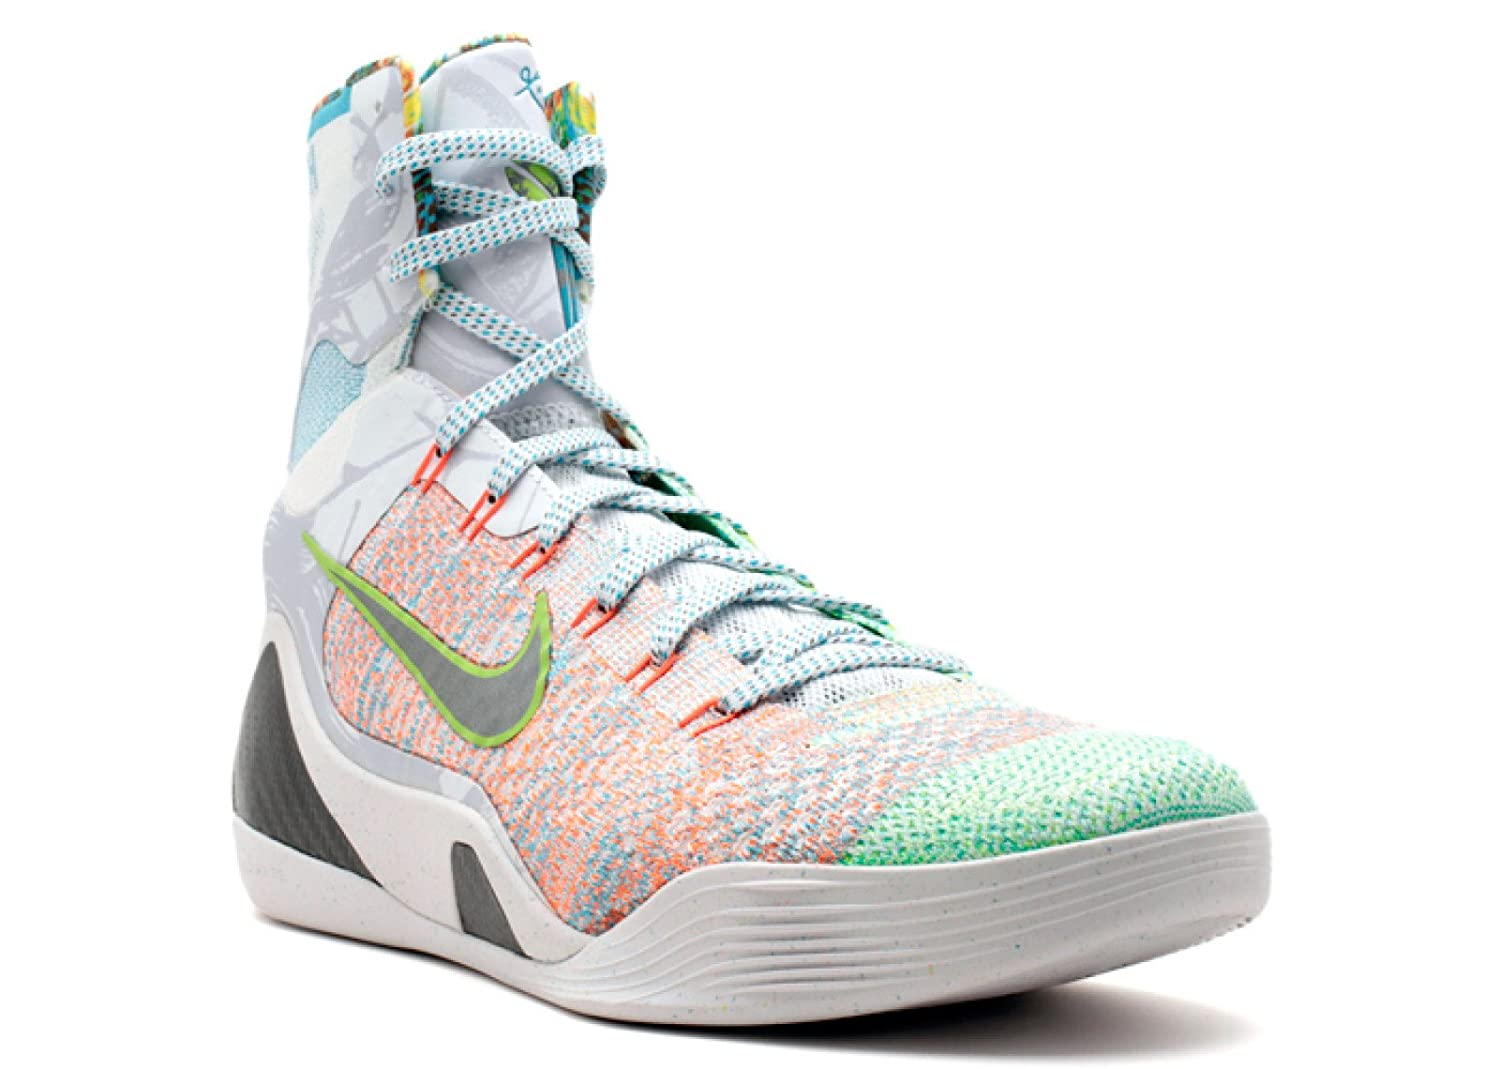 promo code 683d0 9ffe3 Amazon.com   Nike Kobe IX Elite Premium (What The Kobe)   Shoes